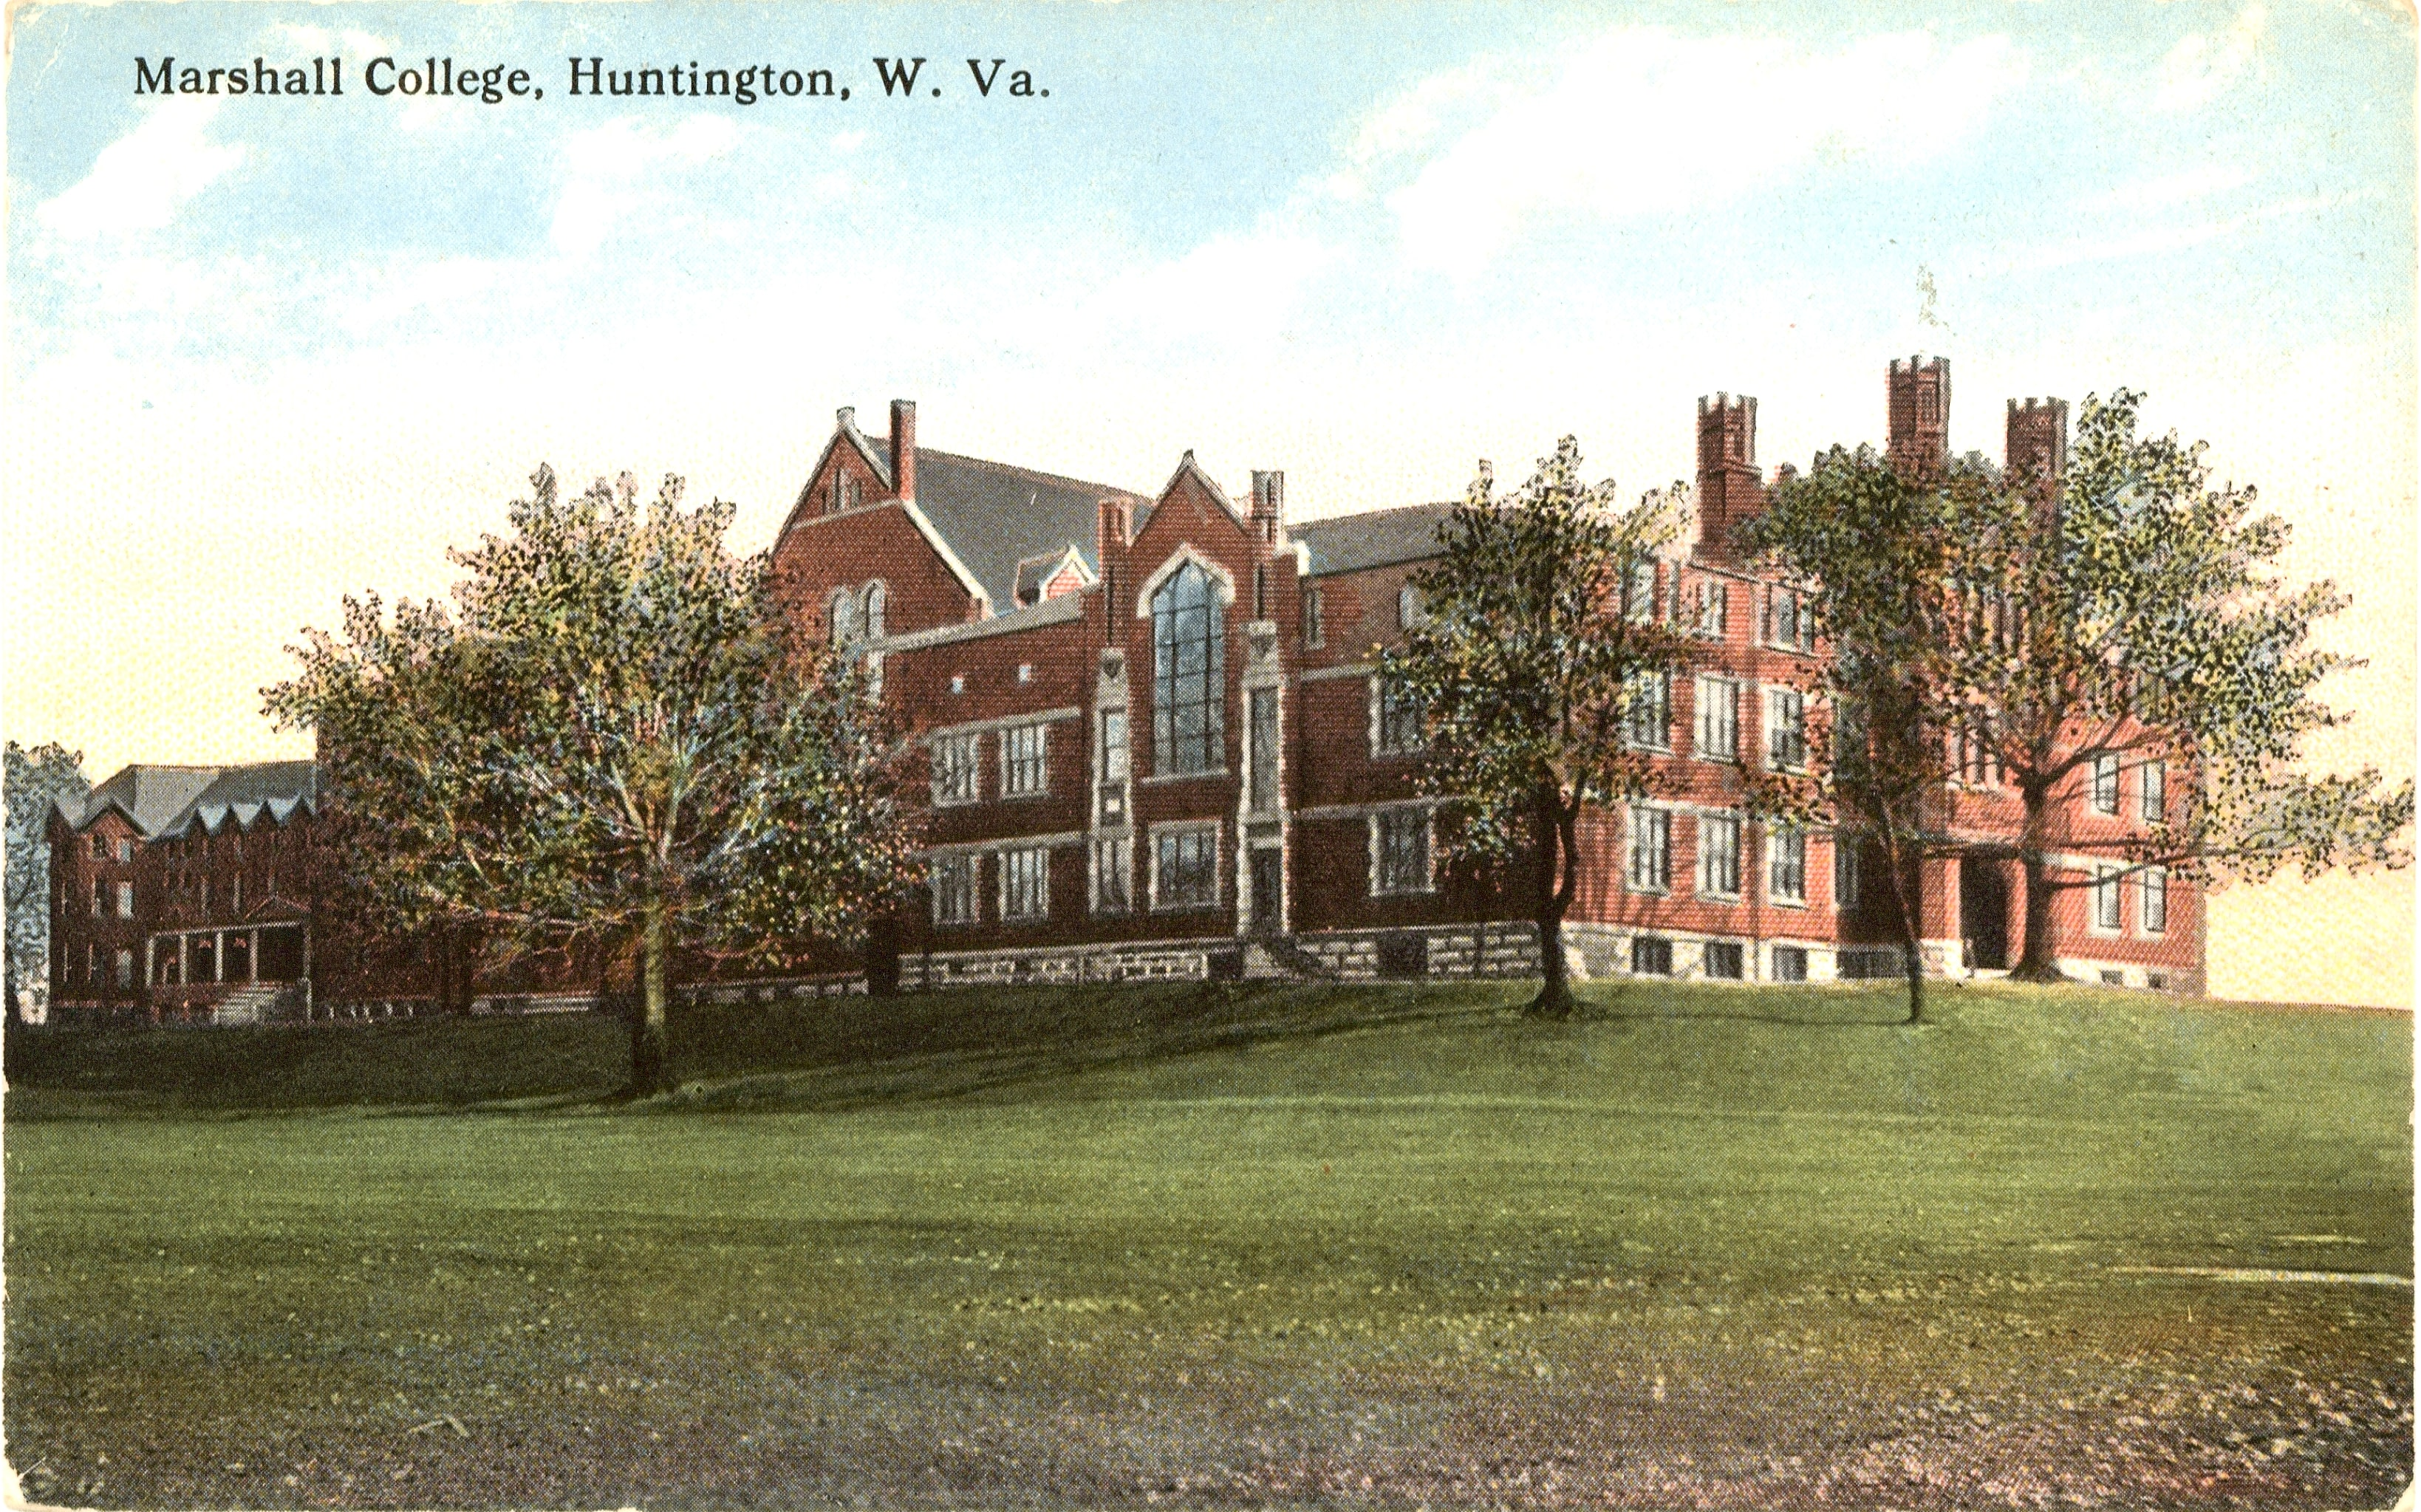 This 1910 postcard shows Old Main with its new Gothic-style main entrance. The exterior of the building has remained largely the same since 1907.